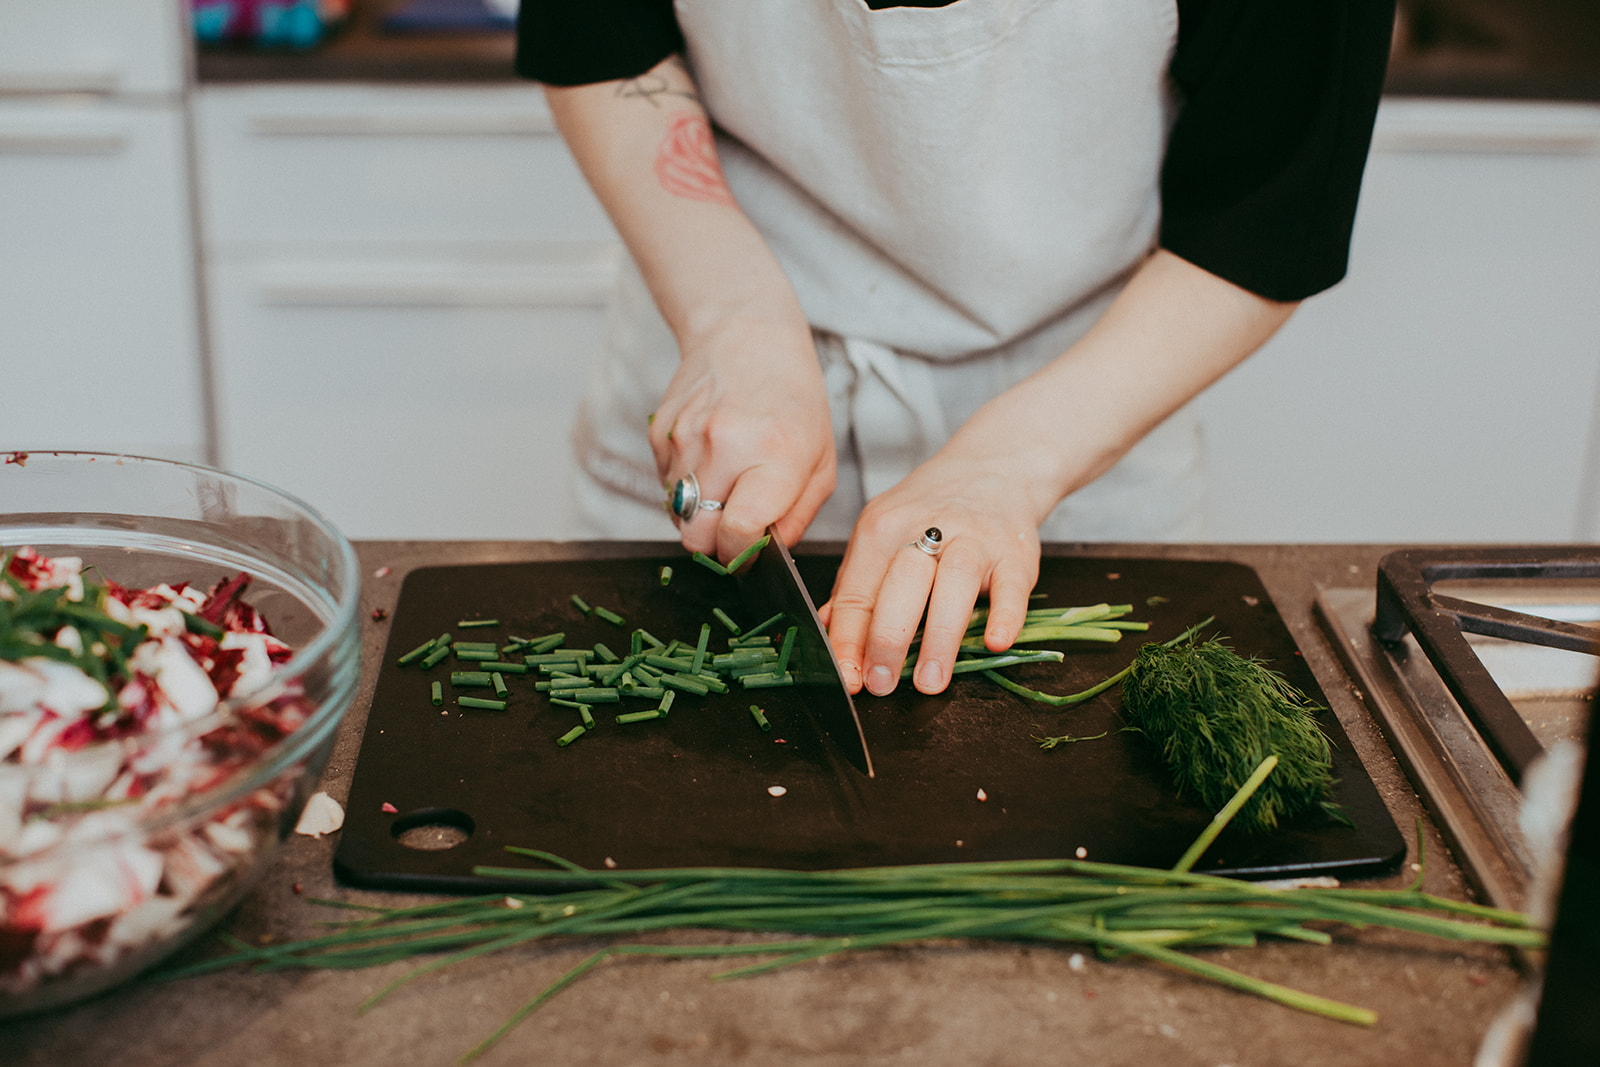 Chef chopping chives, dill and other plants as dinner preparation.